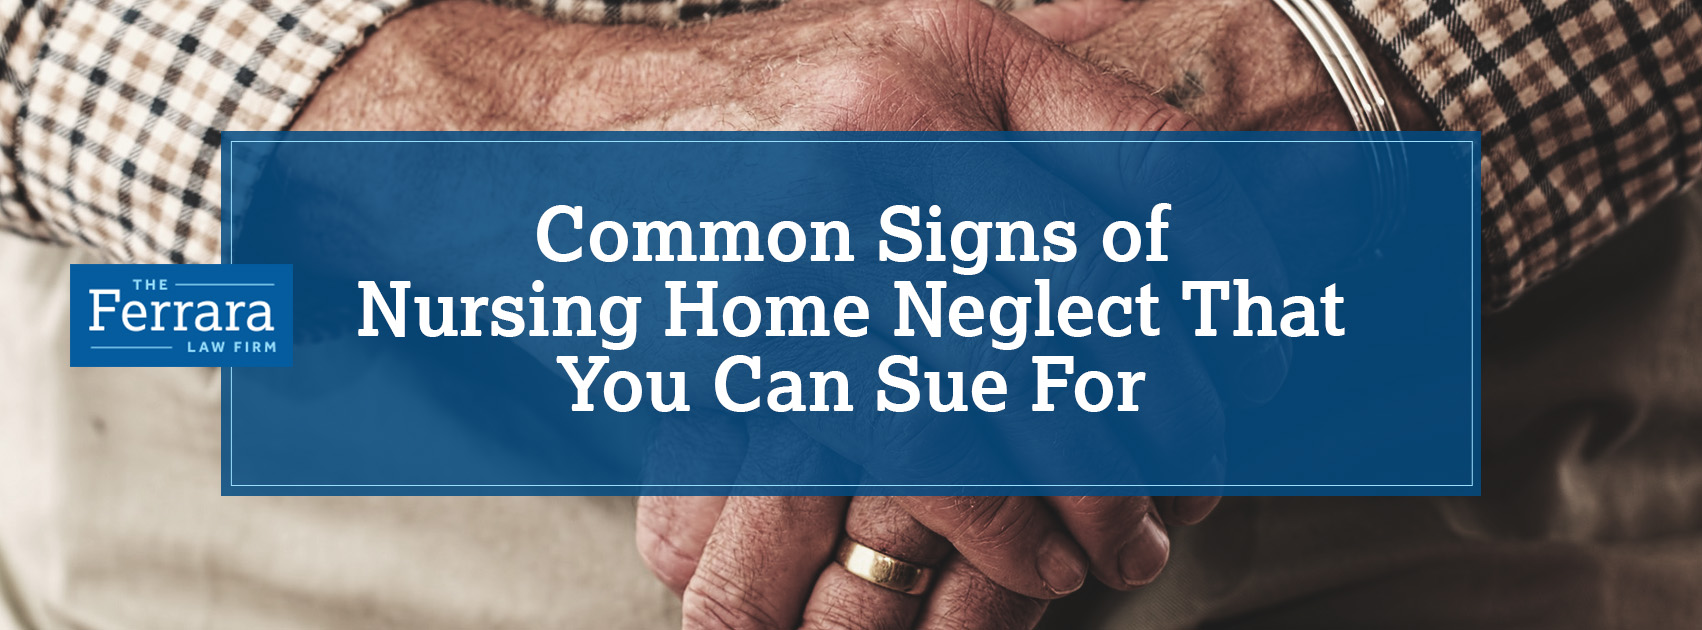 Common Signs Of Nursing Home Neglect